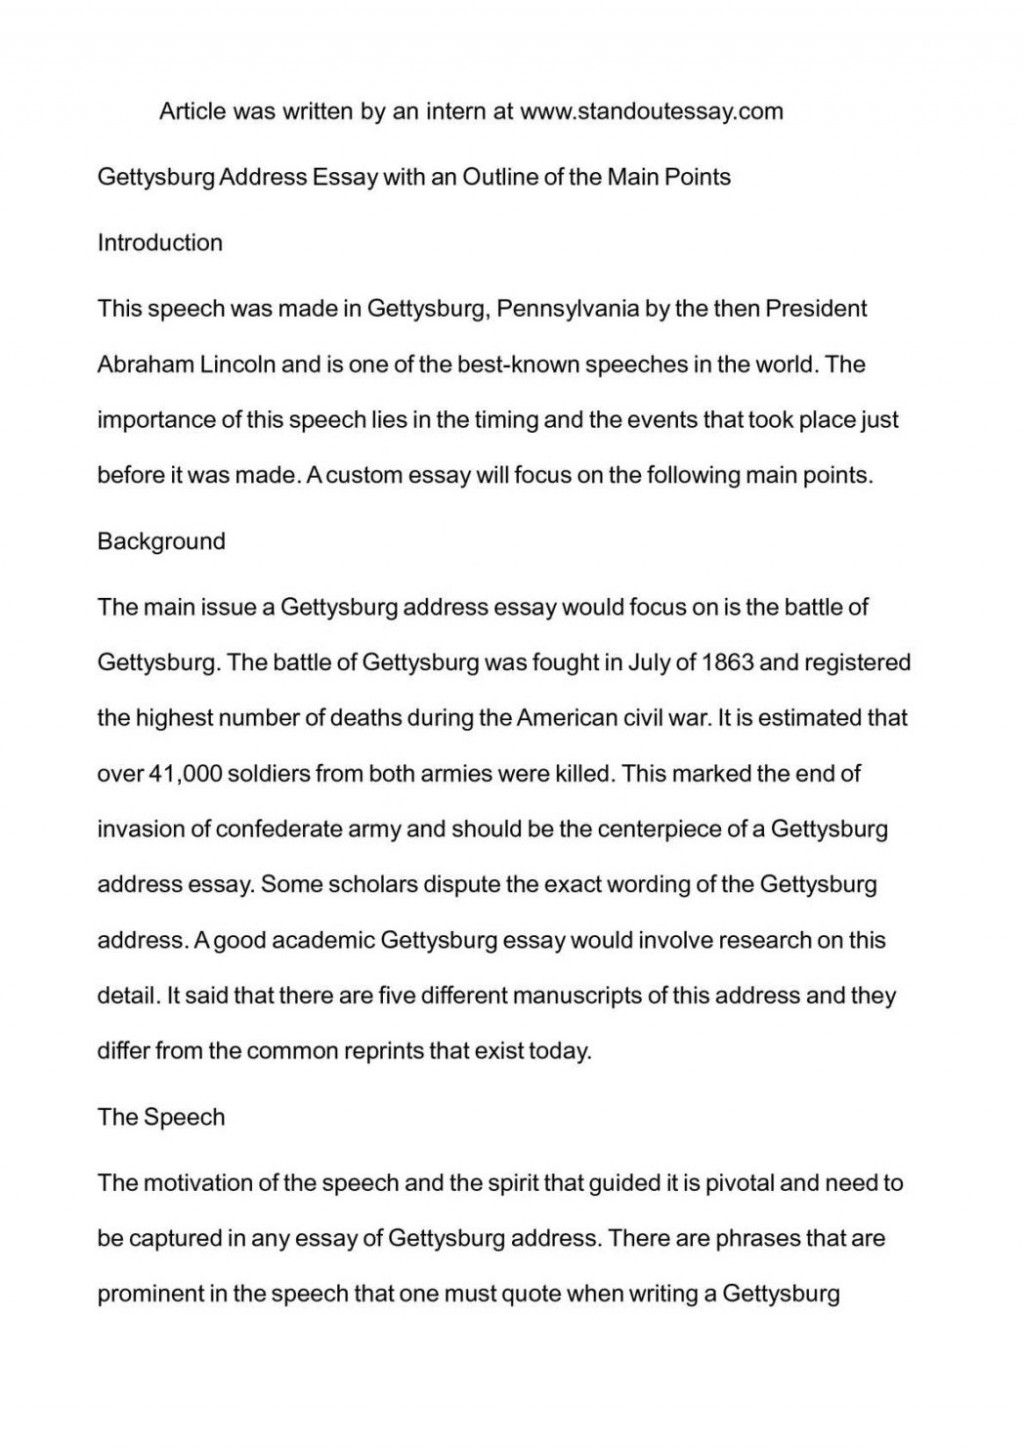 007 Essay About Smoking Framework The Gettysburg Address Calam Atilde Copy O Cause And Effect Outli Outline 1048x1483 Fantastic Is Injurious To Health In Urdu Malayalam Harmful Effects Of Large